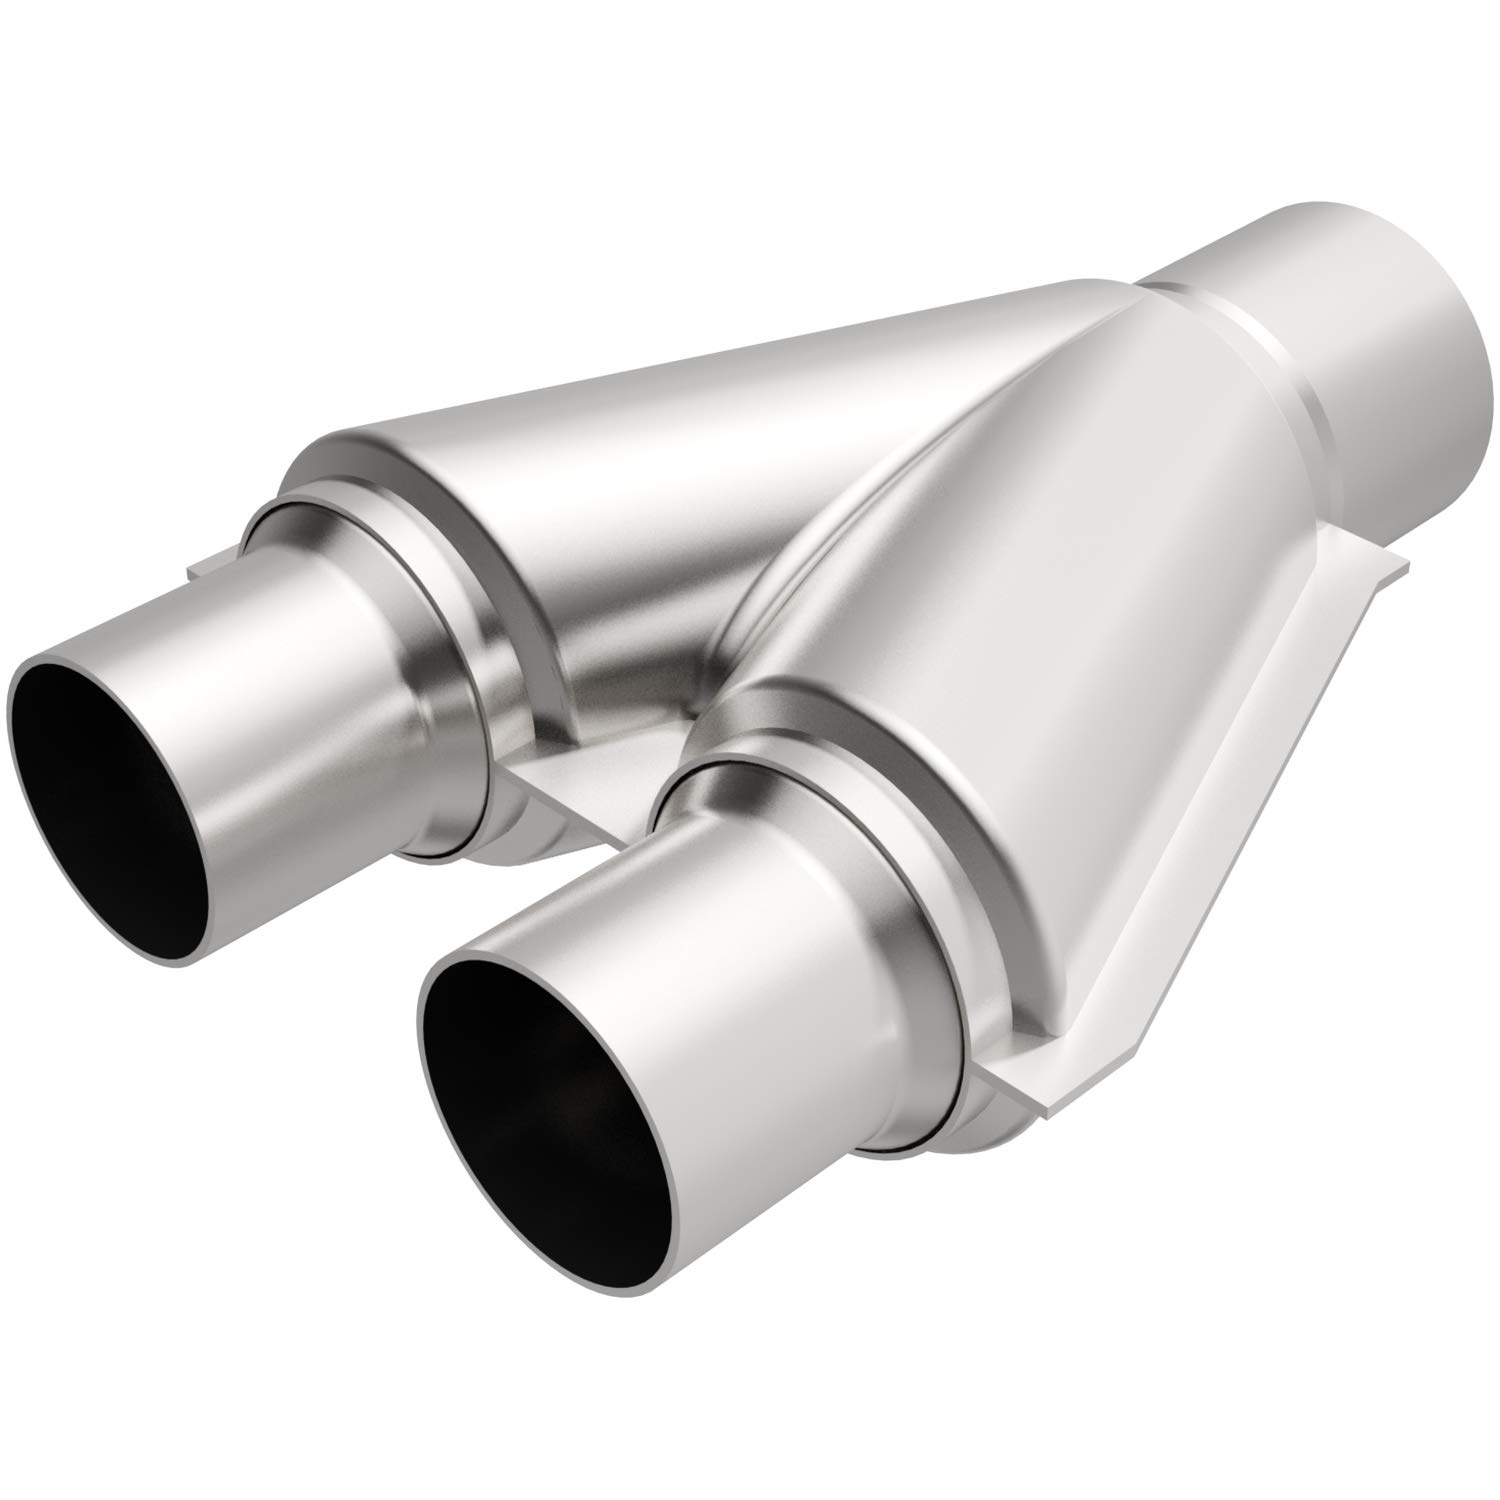 Magnaflow 10758 Stainless Steel 2.5' Exhaust Y-Pipe MagnaFlow Exhaust Products